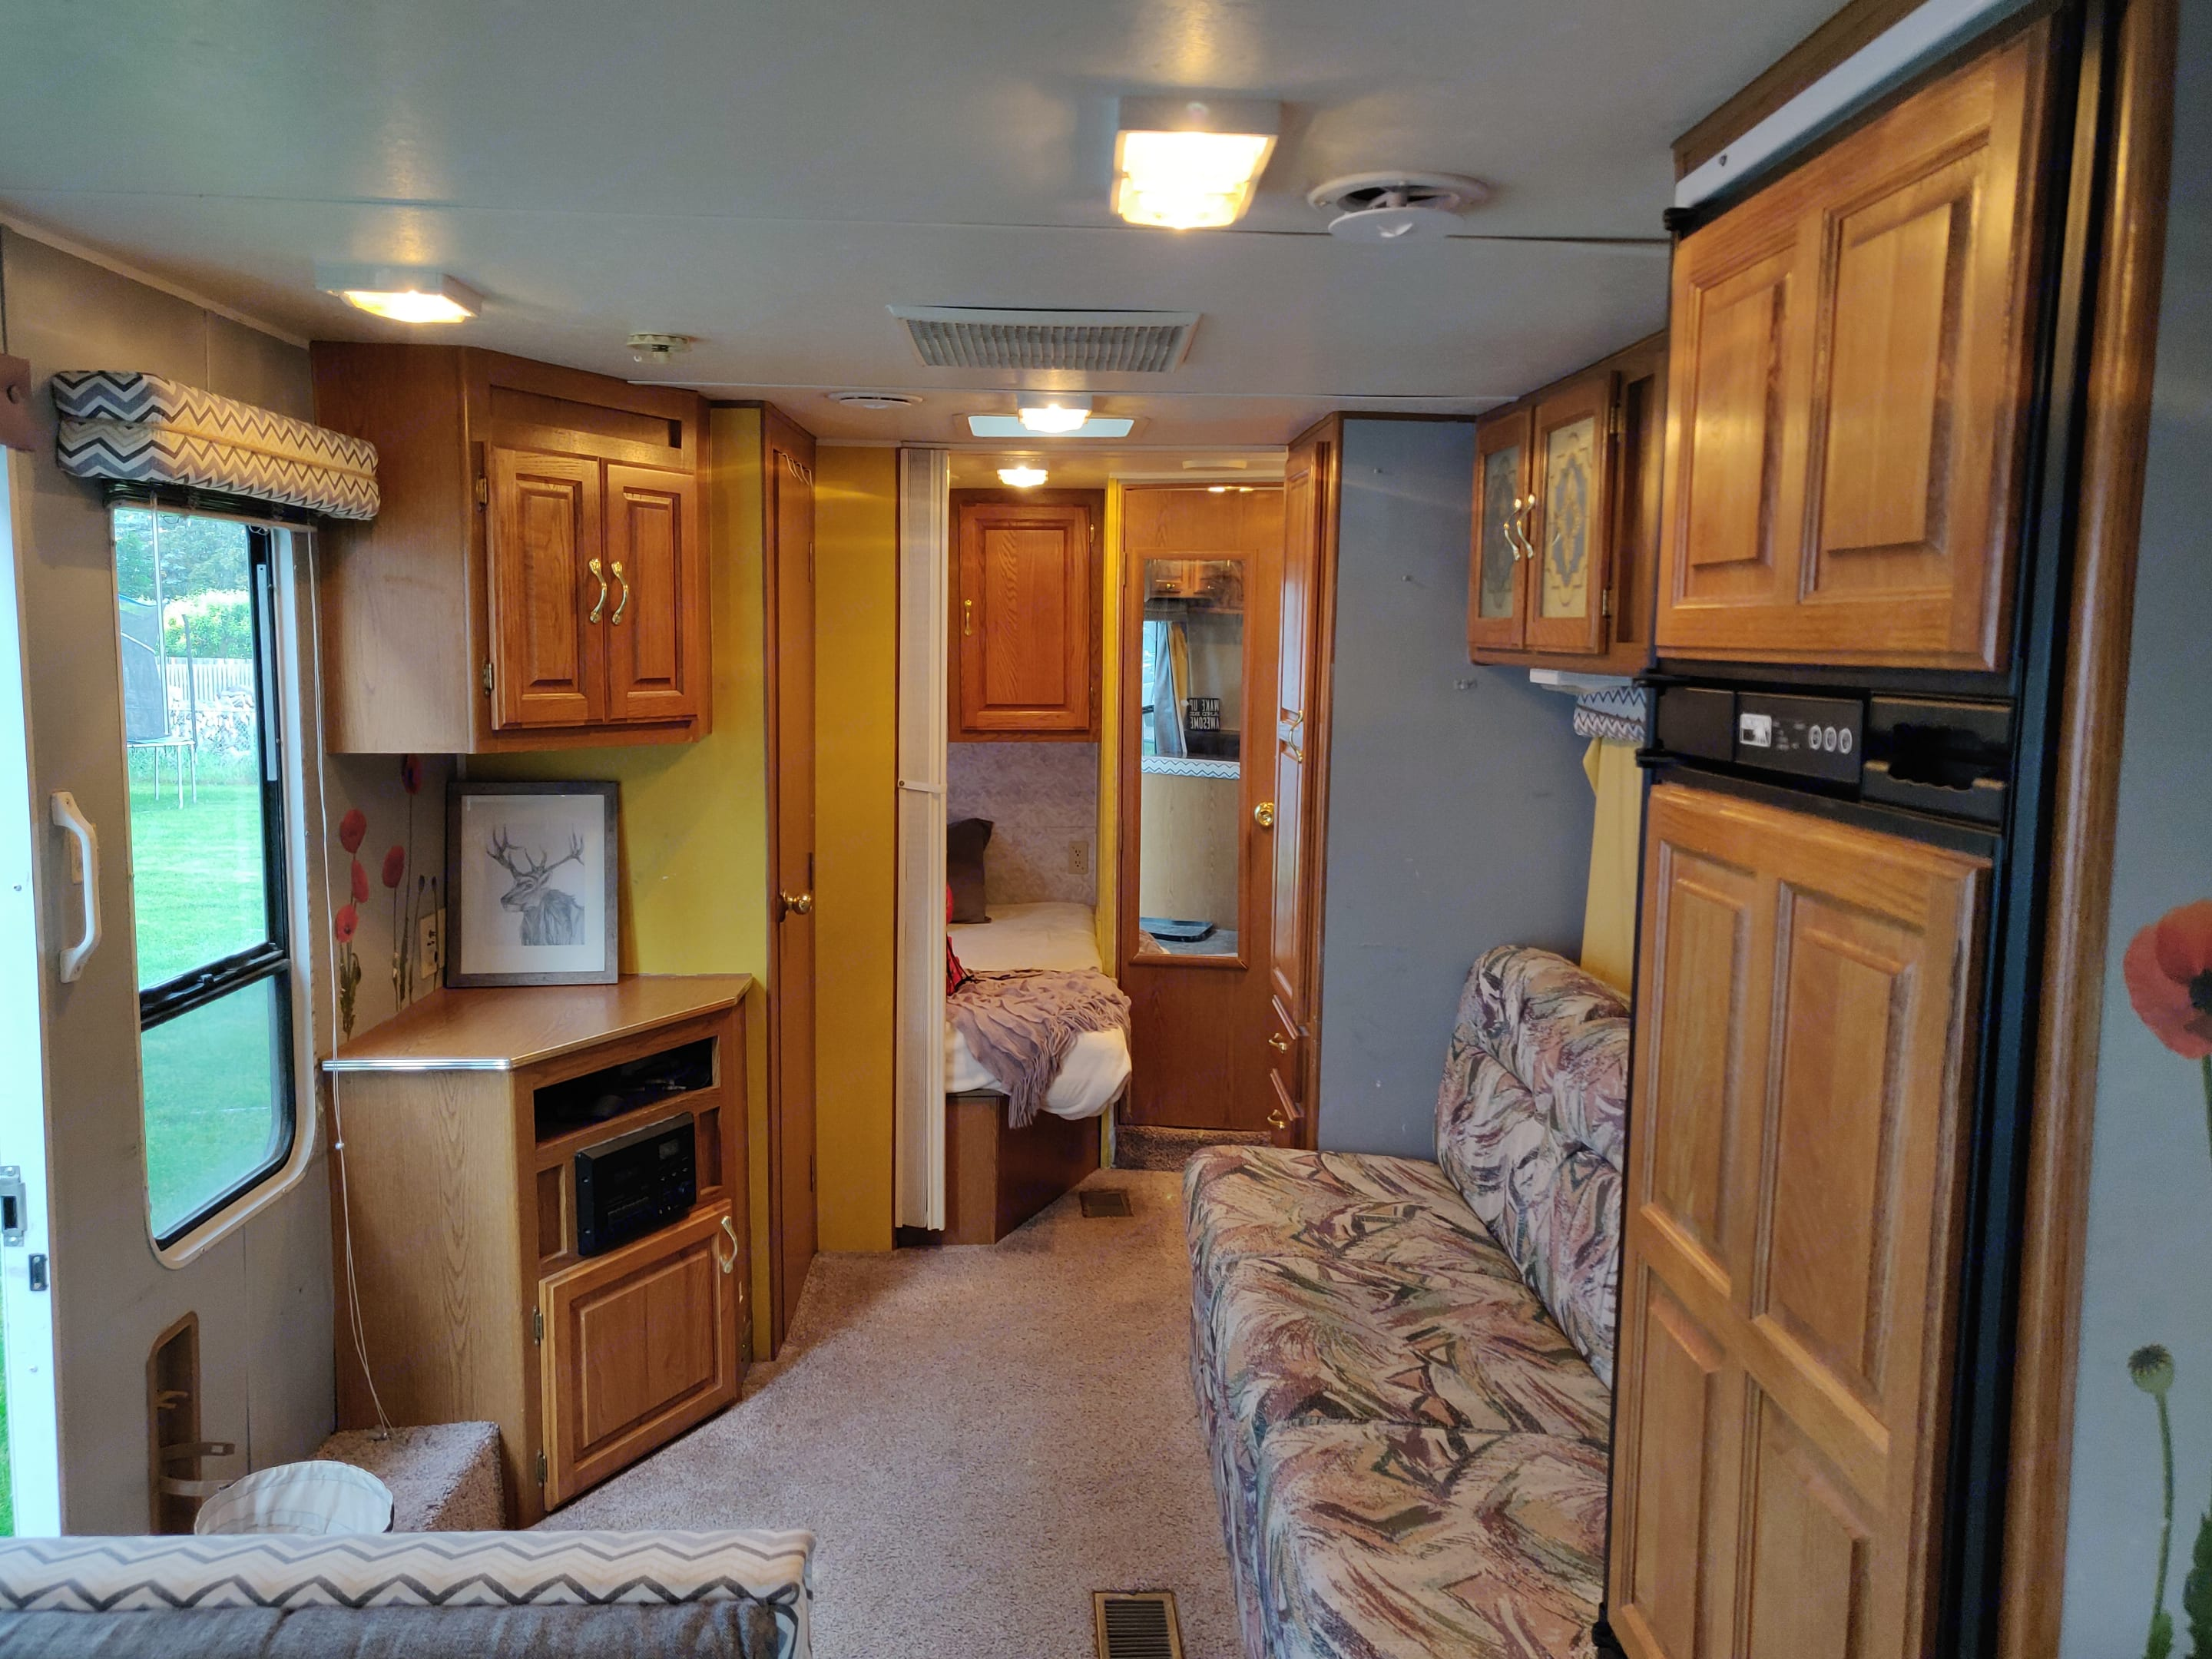 Left Side of Camper when entering. Fold out couch bed, Full Size Bed and Single bunk in back with Bathroom sink, mirror, toilet, and shower.. Jayco Eagle M 242 FK 1998